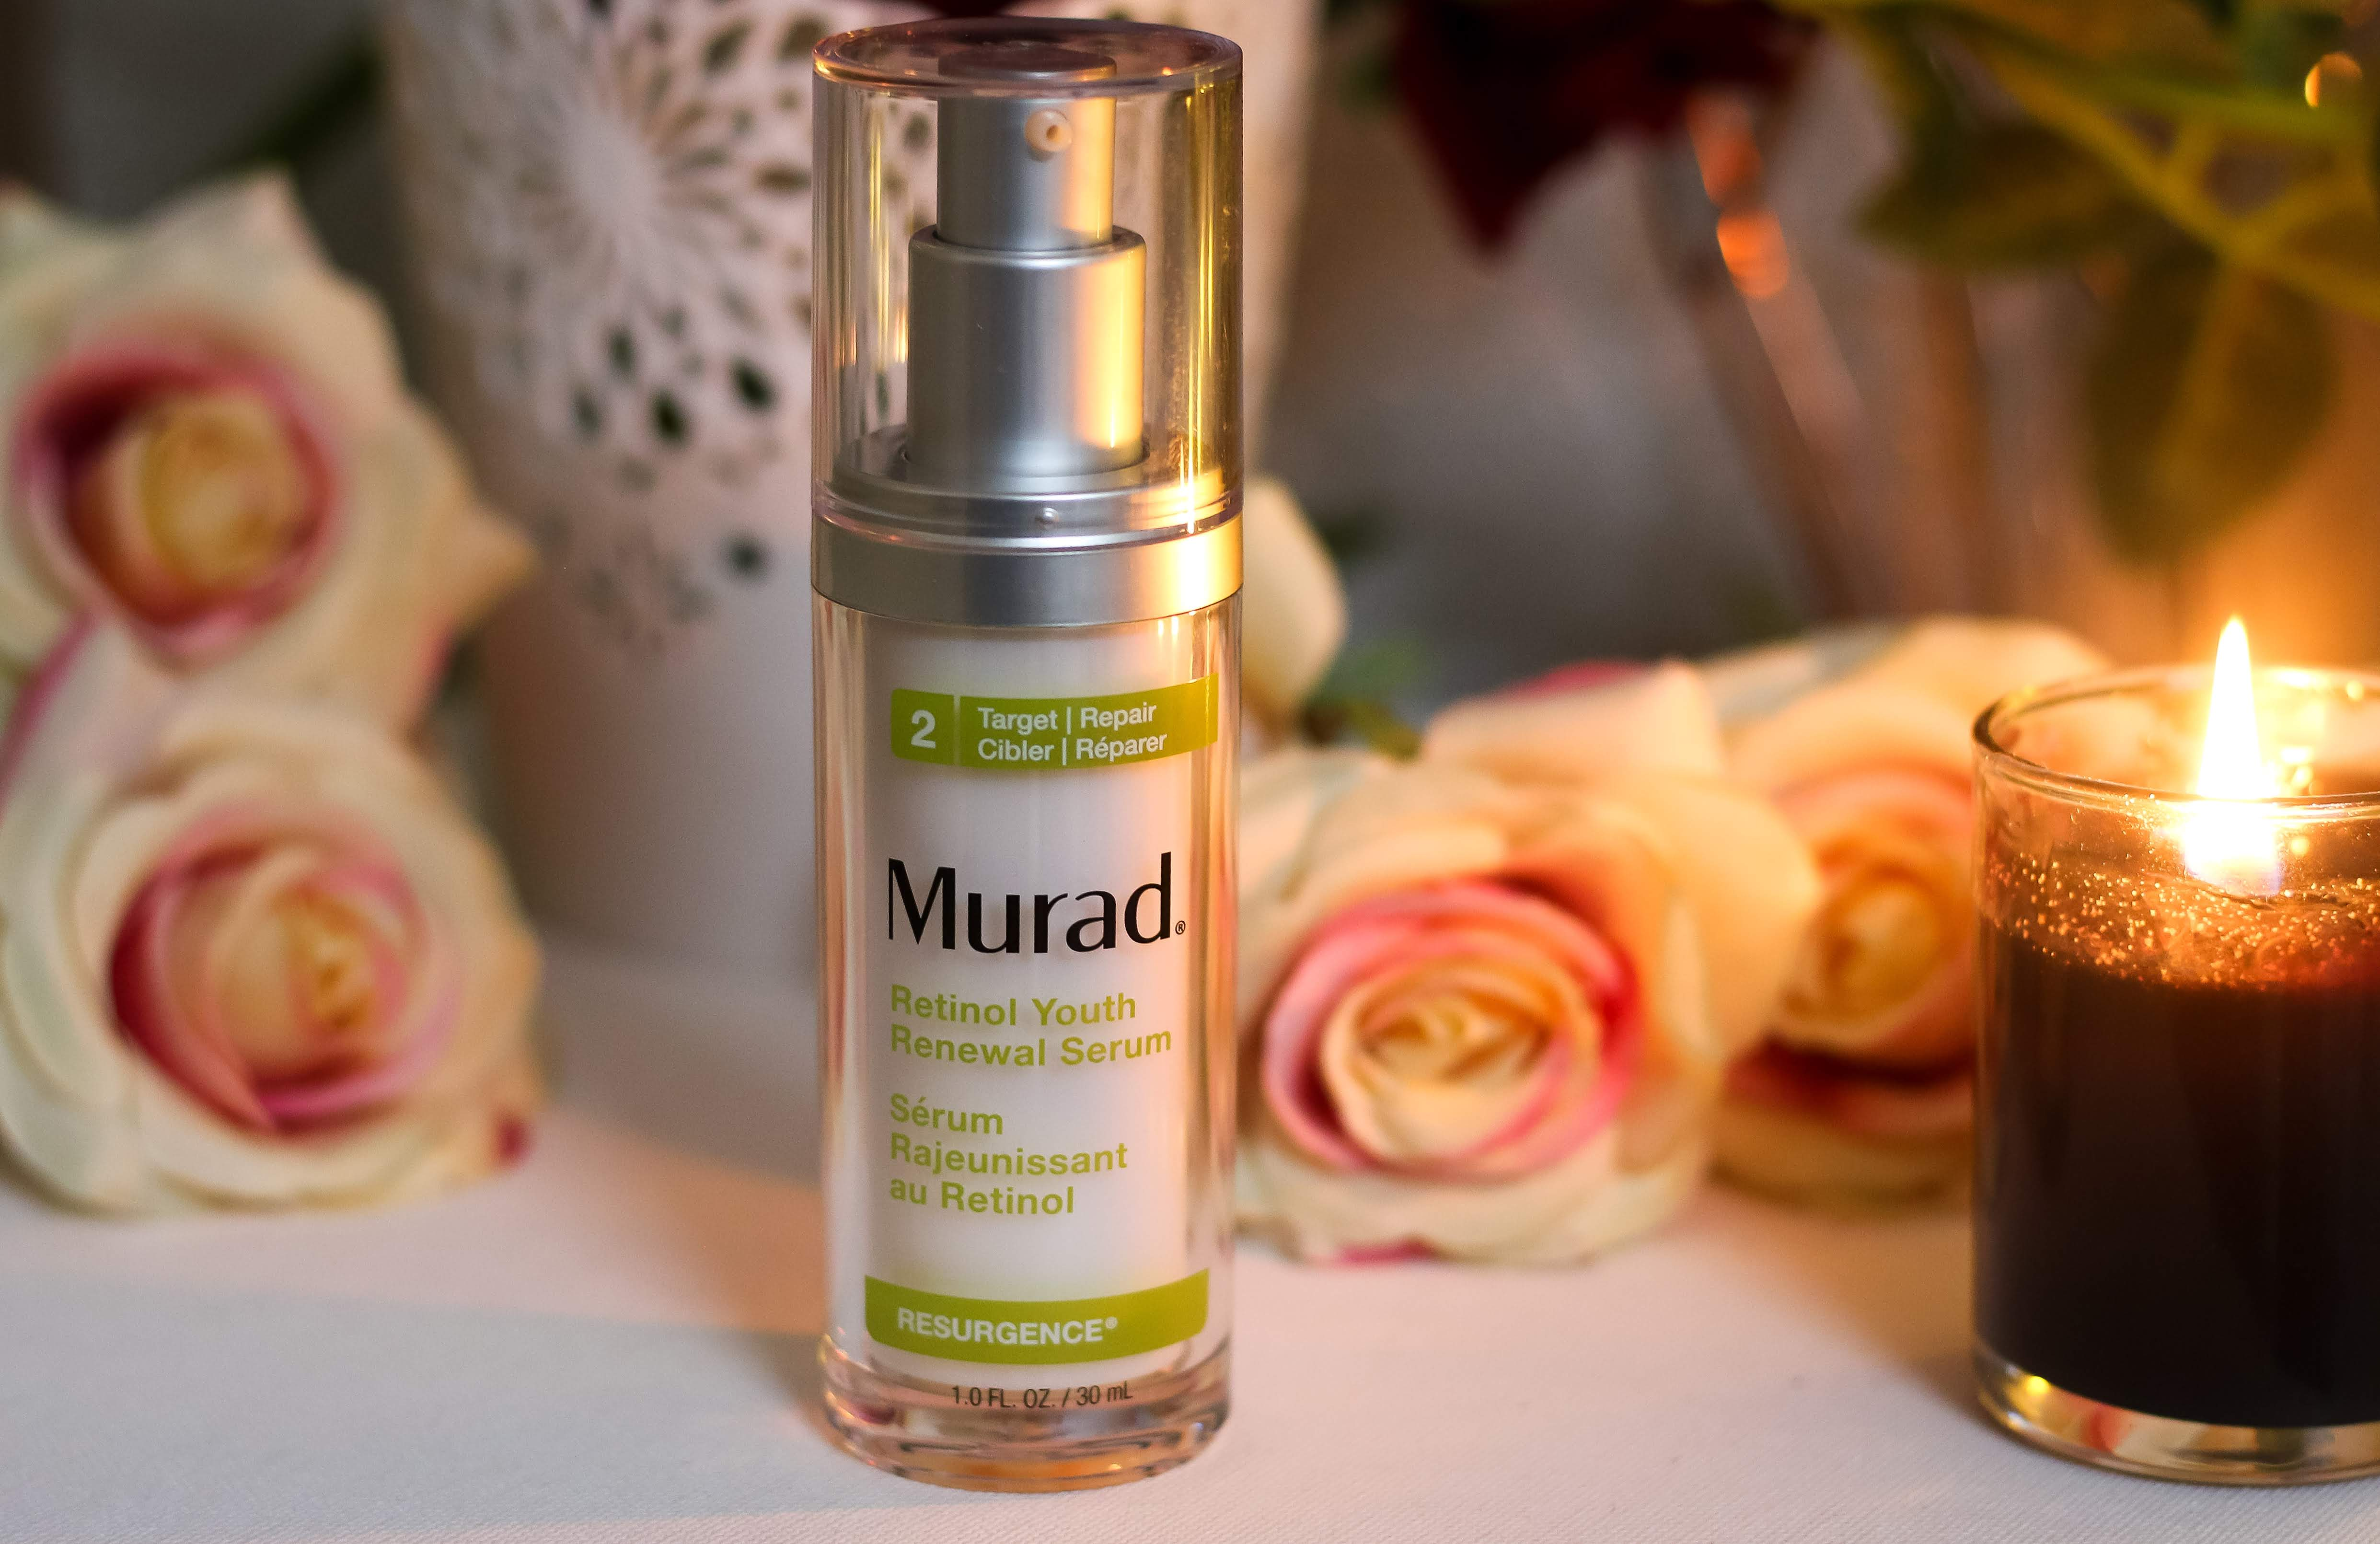 murad retinol youth renewal serum review, murad youth renewal serum review, murad youth renewal serum buy, murad retinol youth renewal serum retinol ingredients,  murad retinol youth renewal serum sephora, murad youth renewal serum, murad youth renewal serum review, murad youth renewal serum online, murad retinol skincare range,  murad retinol youth renewal skincare